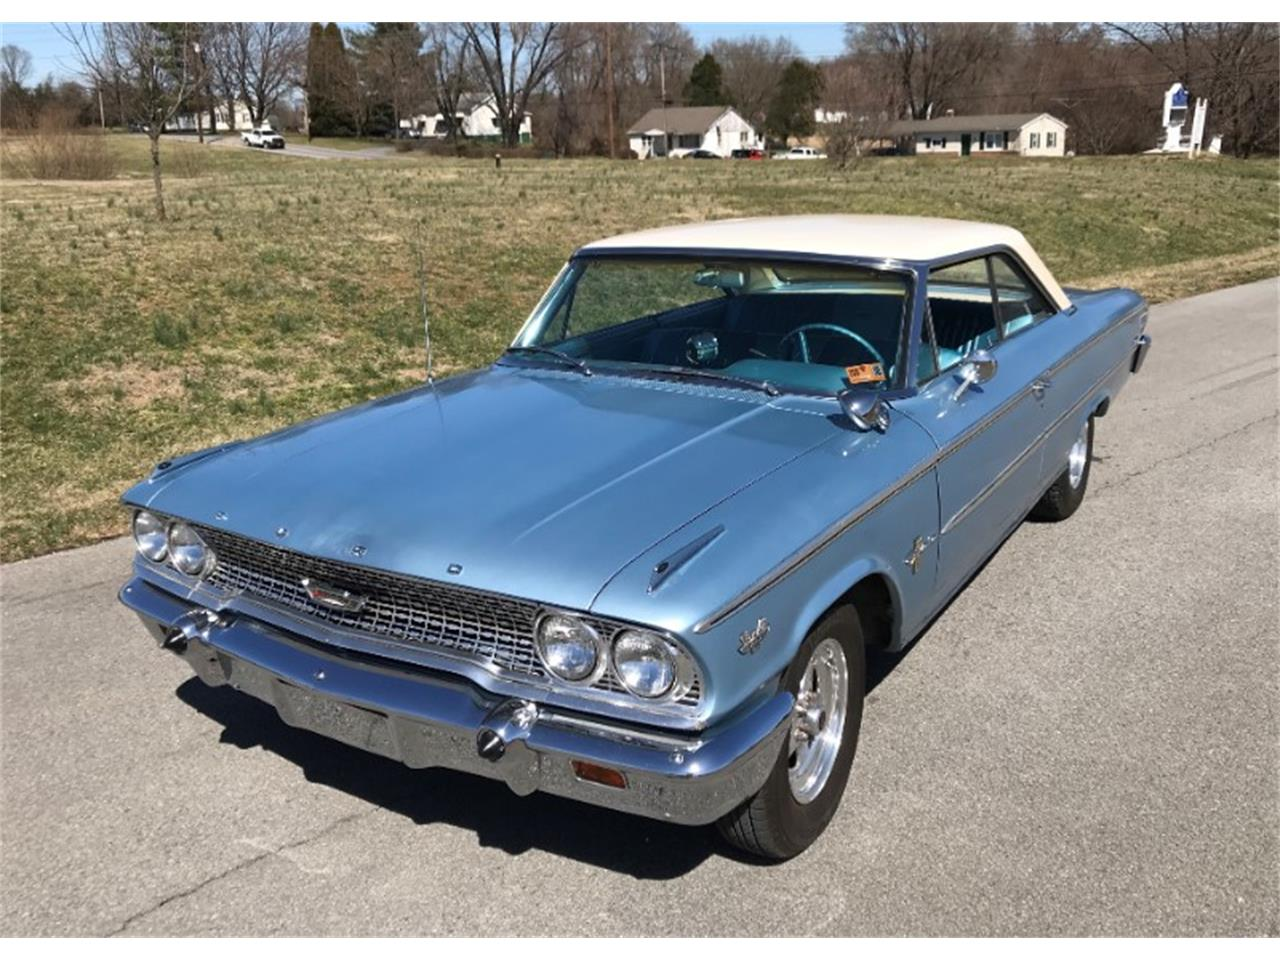 1963 Ford Galaxie 500 (CC-1269788) for sale in Harpers Ferry, West Virginia